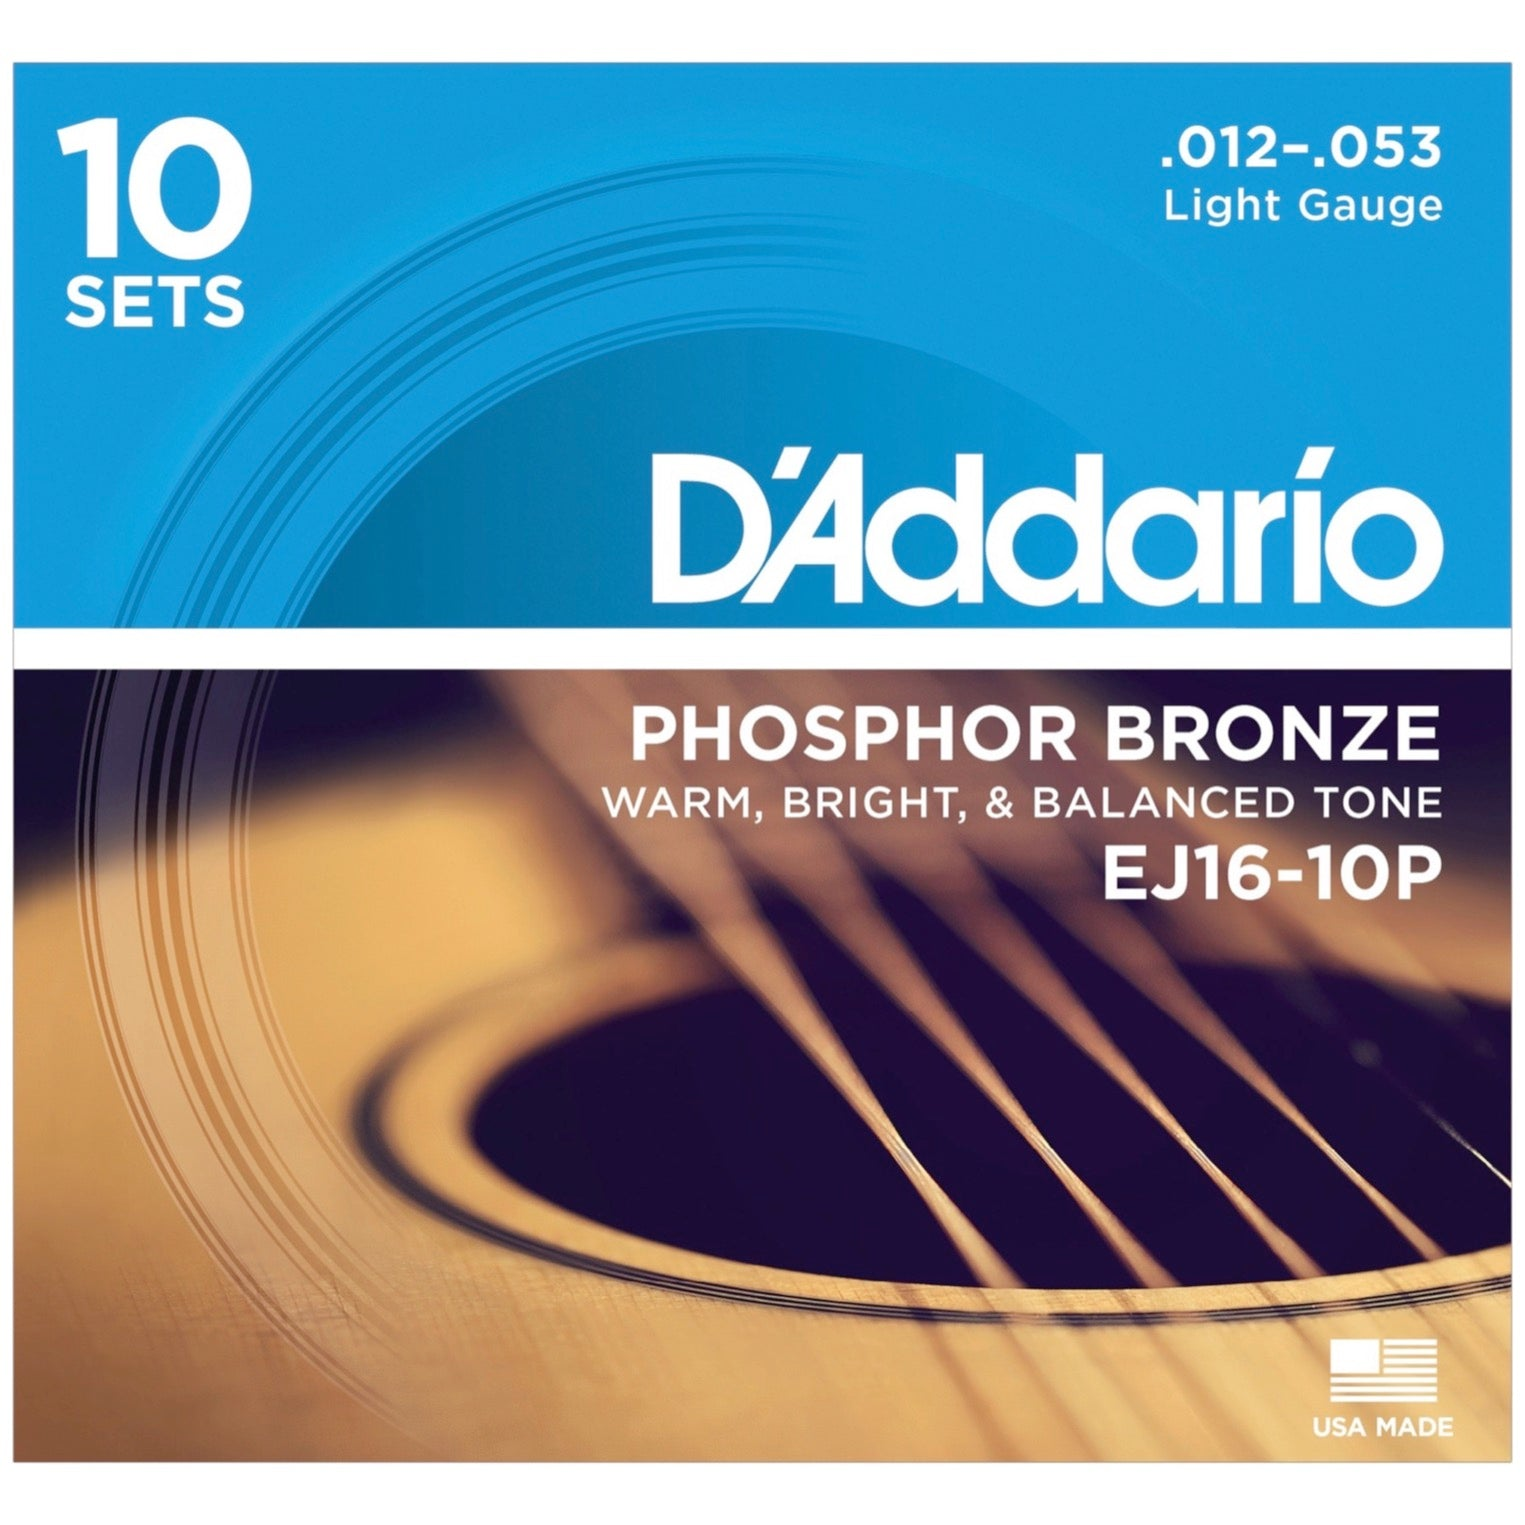 D'Addario EJ16 Phosphor Bronze Acoustic Guitar Strings (Light, 12-53), 10-Pack